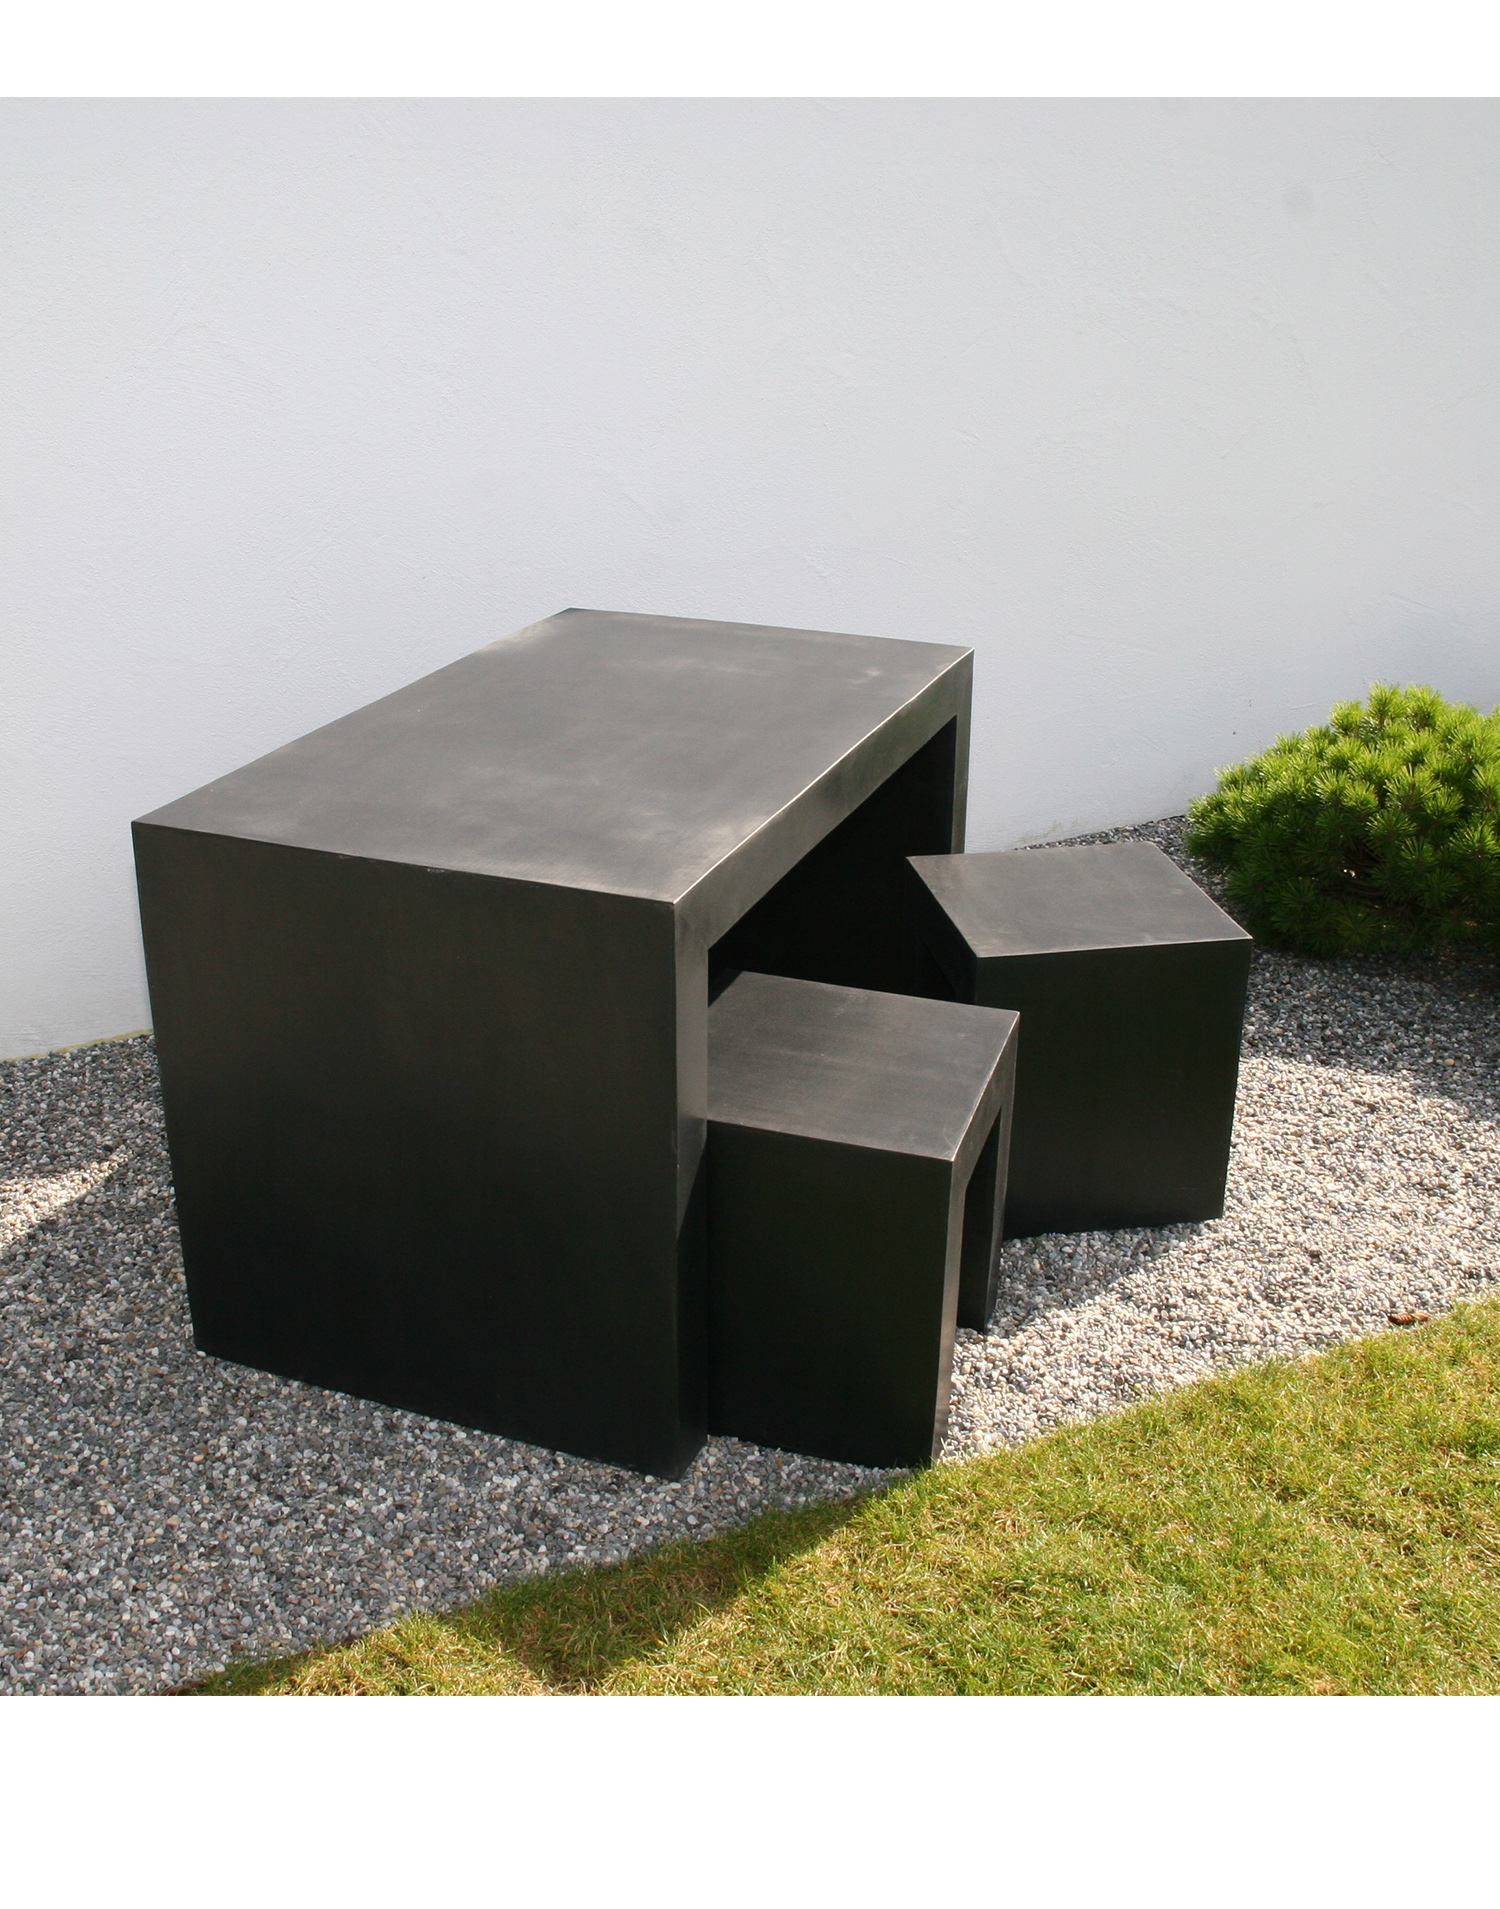 kunststoff gartenm bel set angebote. Black Bedroom Furniture Sets. Home Design Ideas